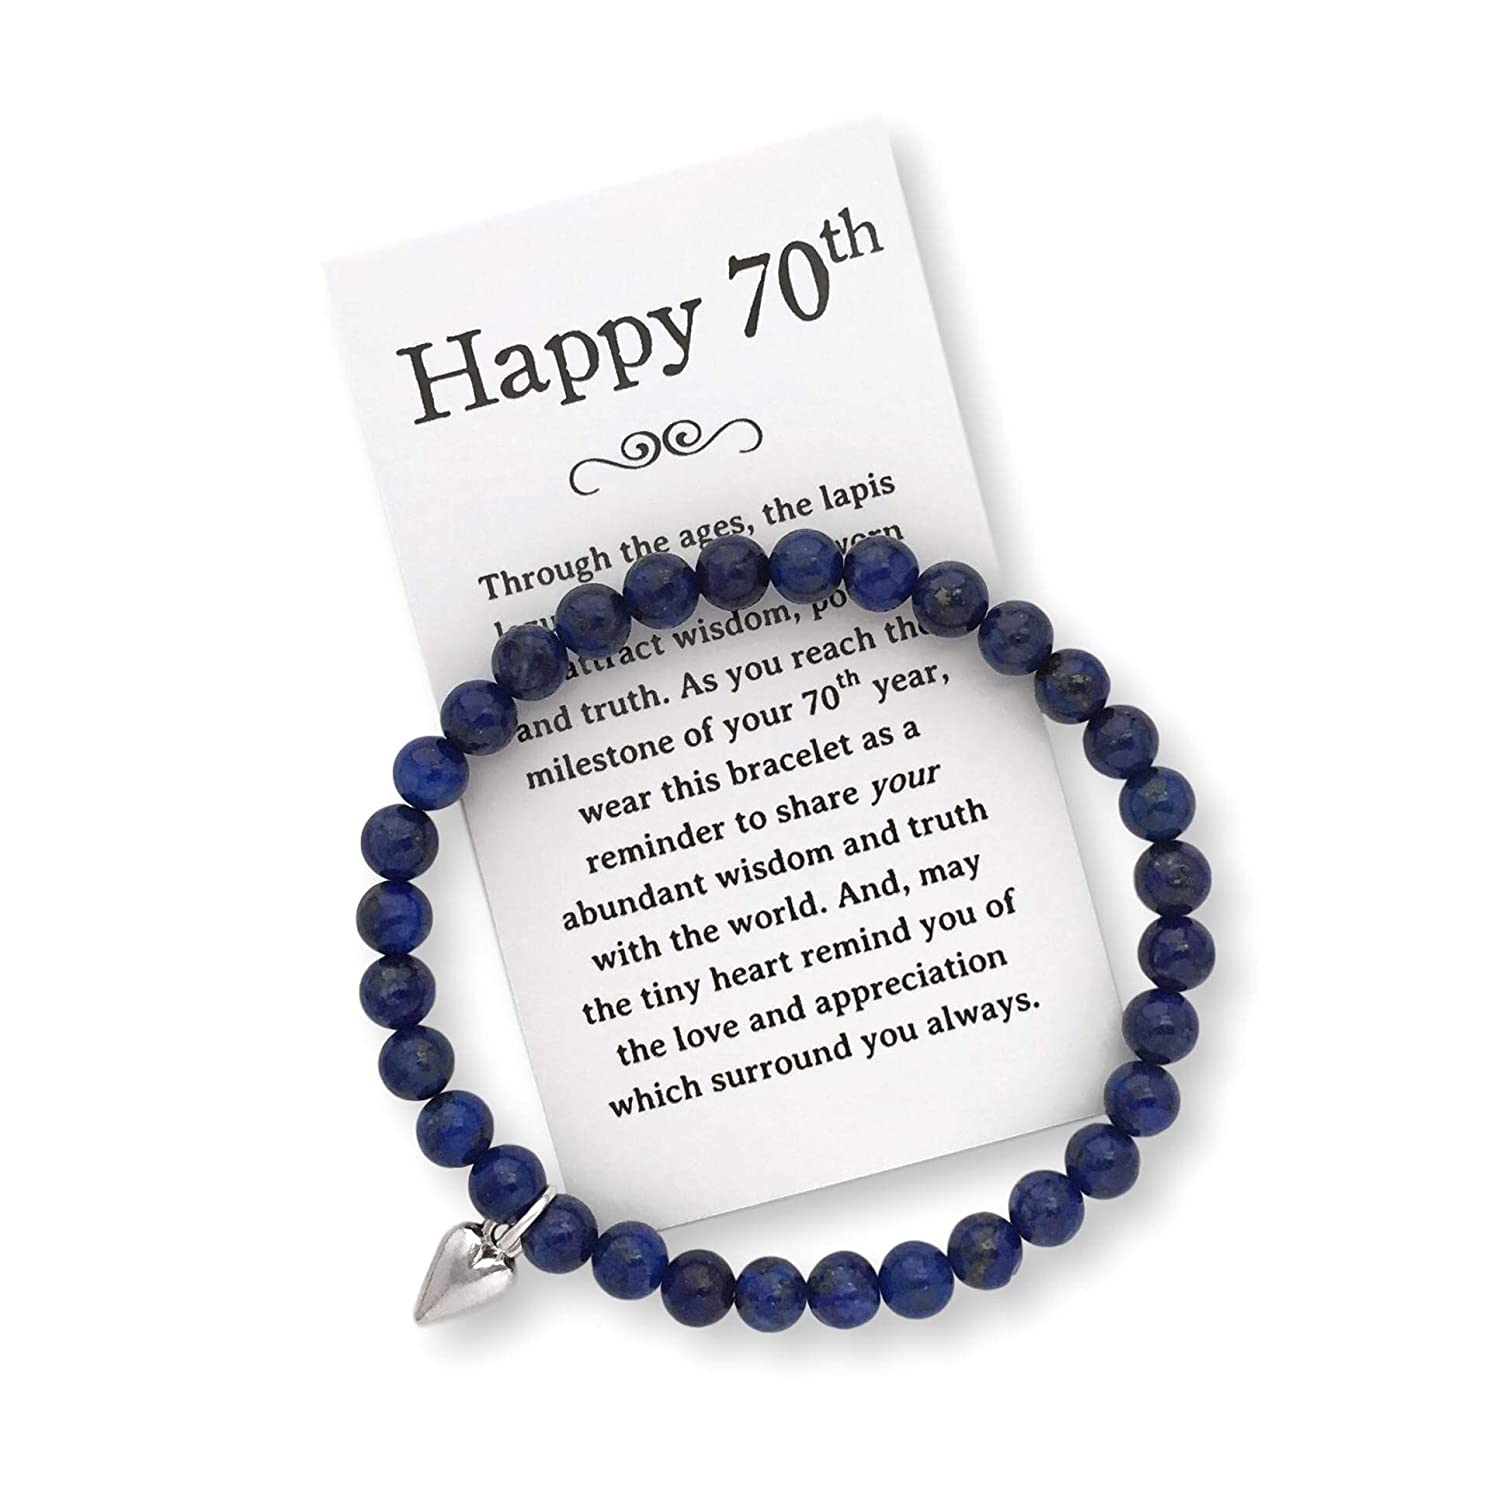 70th Jewelry Bracelet with Box Bow and Card 70th Birthday Gift for Women